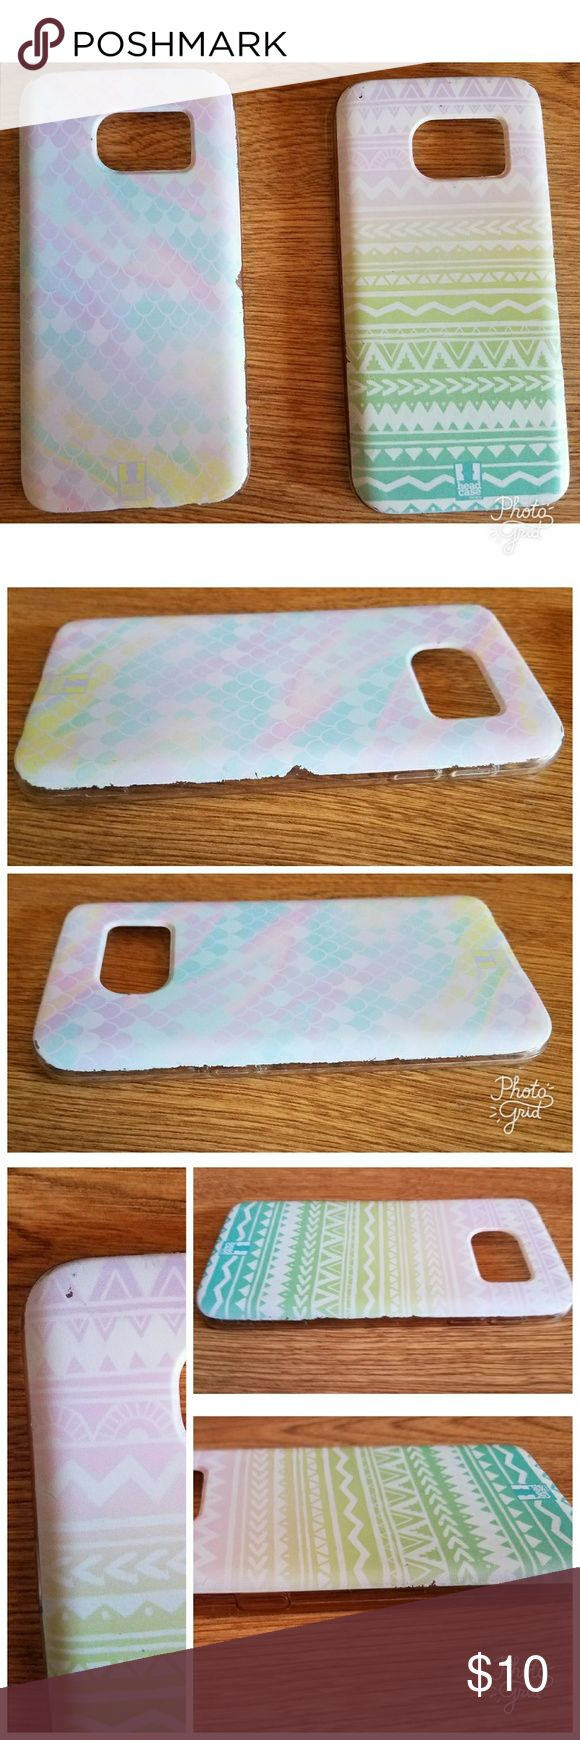 Galaxy s7 phone case bundle Gently used phone cases. Some wear on the edges- shown in photos.   Smoke free home. Head Case Accessories Phone Cases